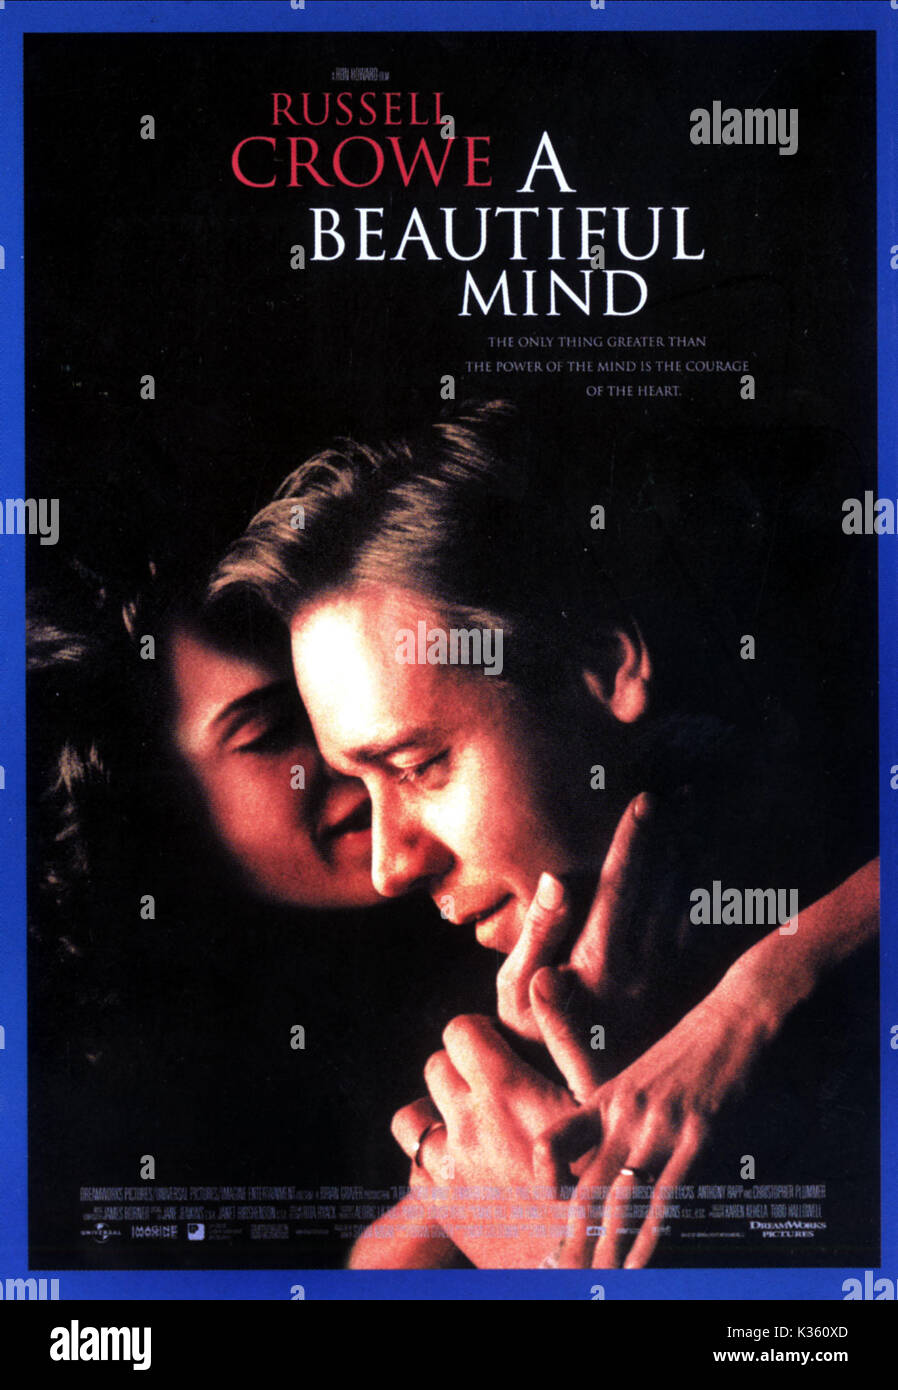 a beautiful mind movie review essay